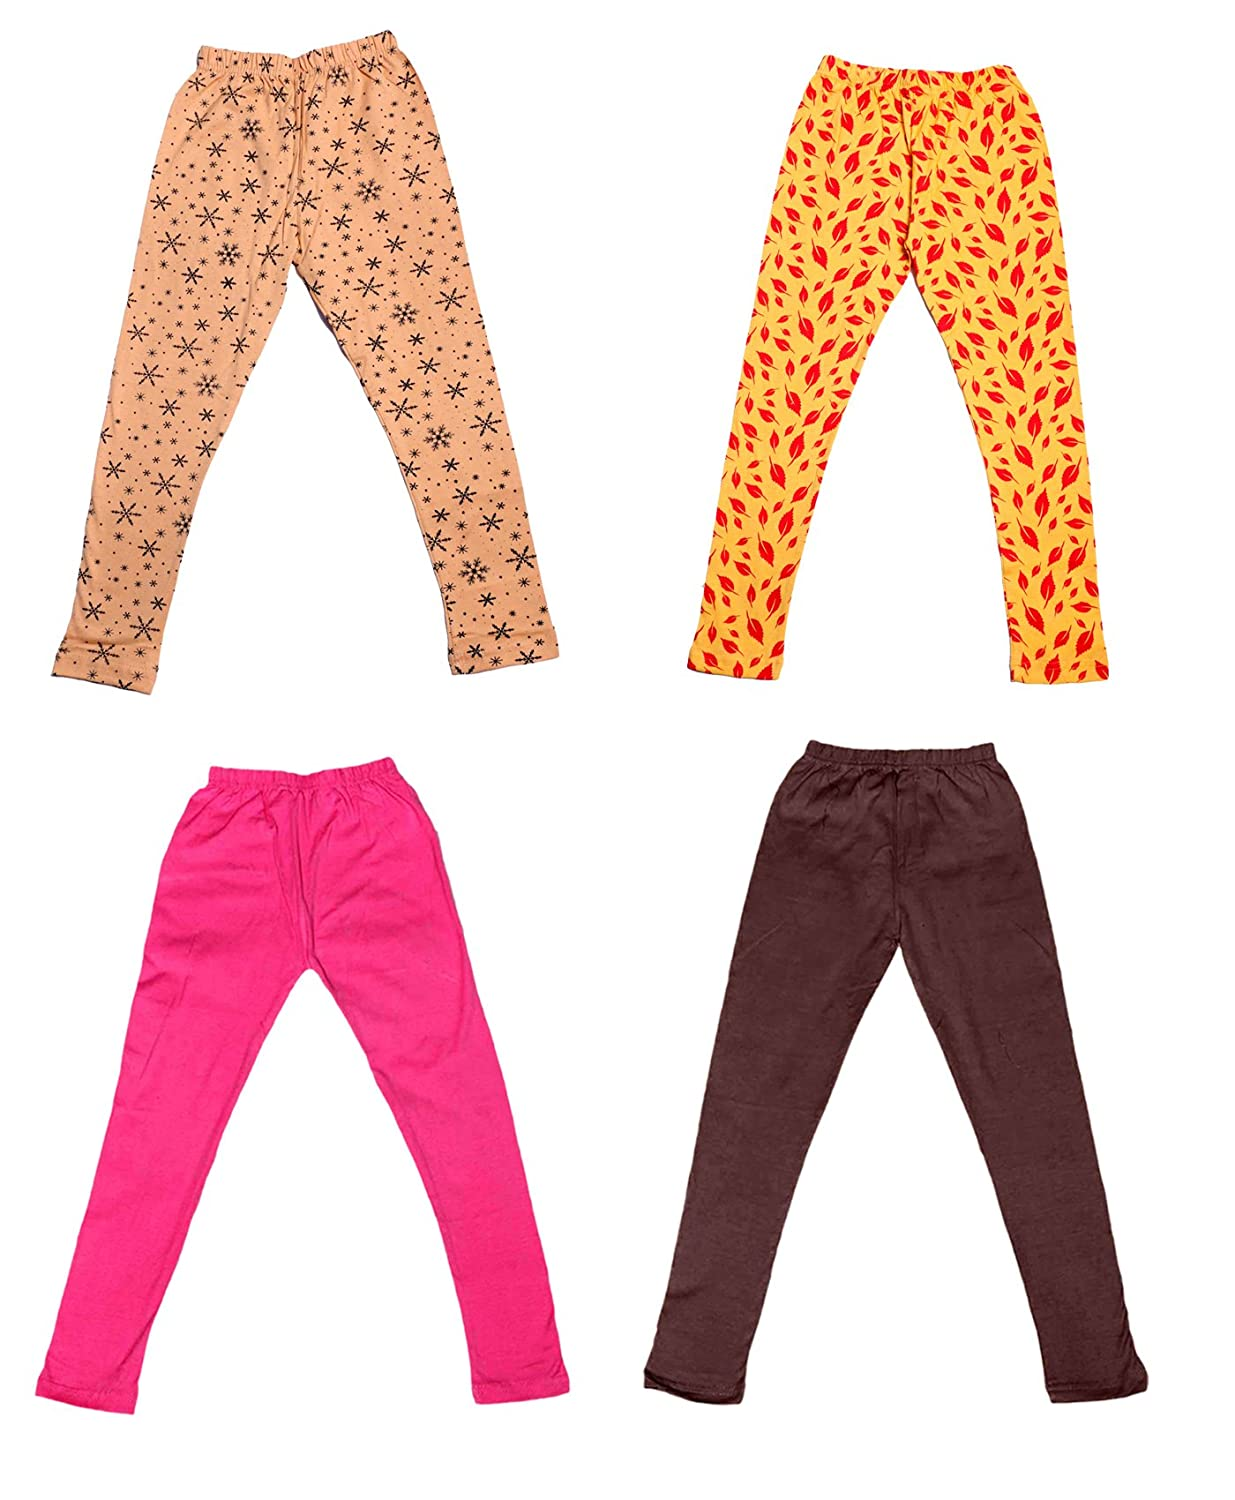 and 2 Cotton Printed Legging Pants Pack Of 4 Indistar Girls 2 Cotton Solid Legging Pants /_Multicolor/_Size-1-3 Years/_71412131819-IW-P4-22